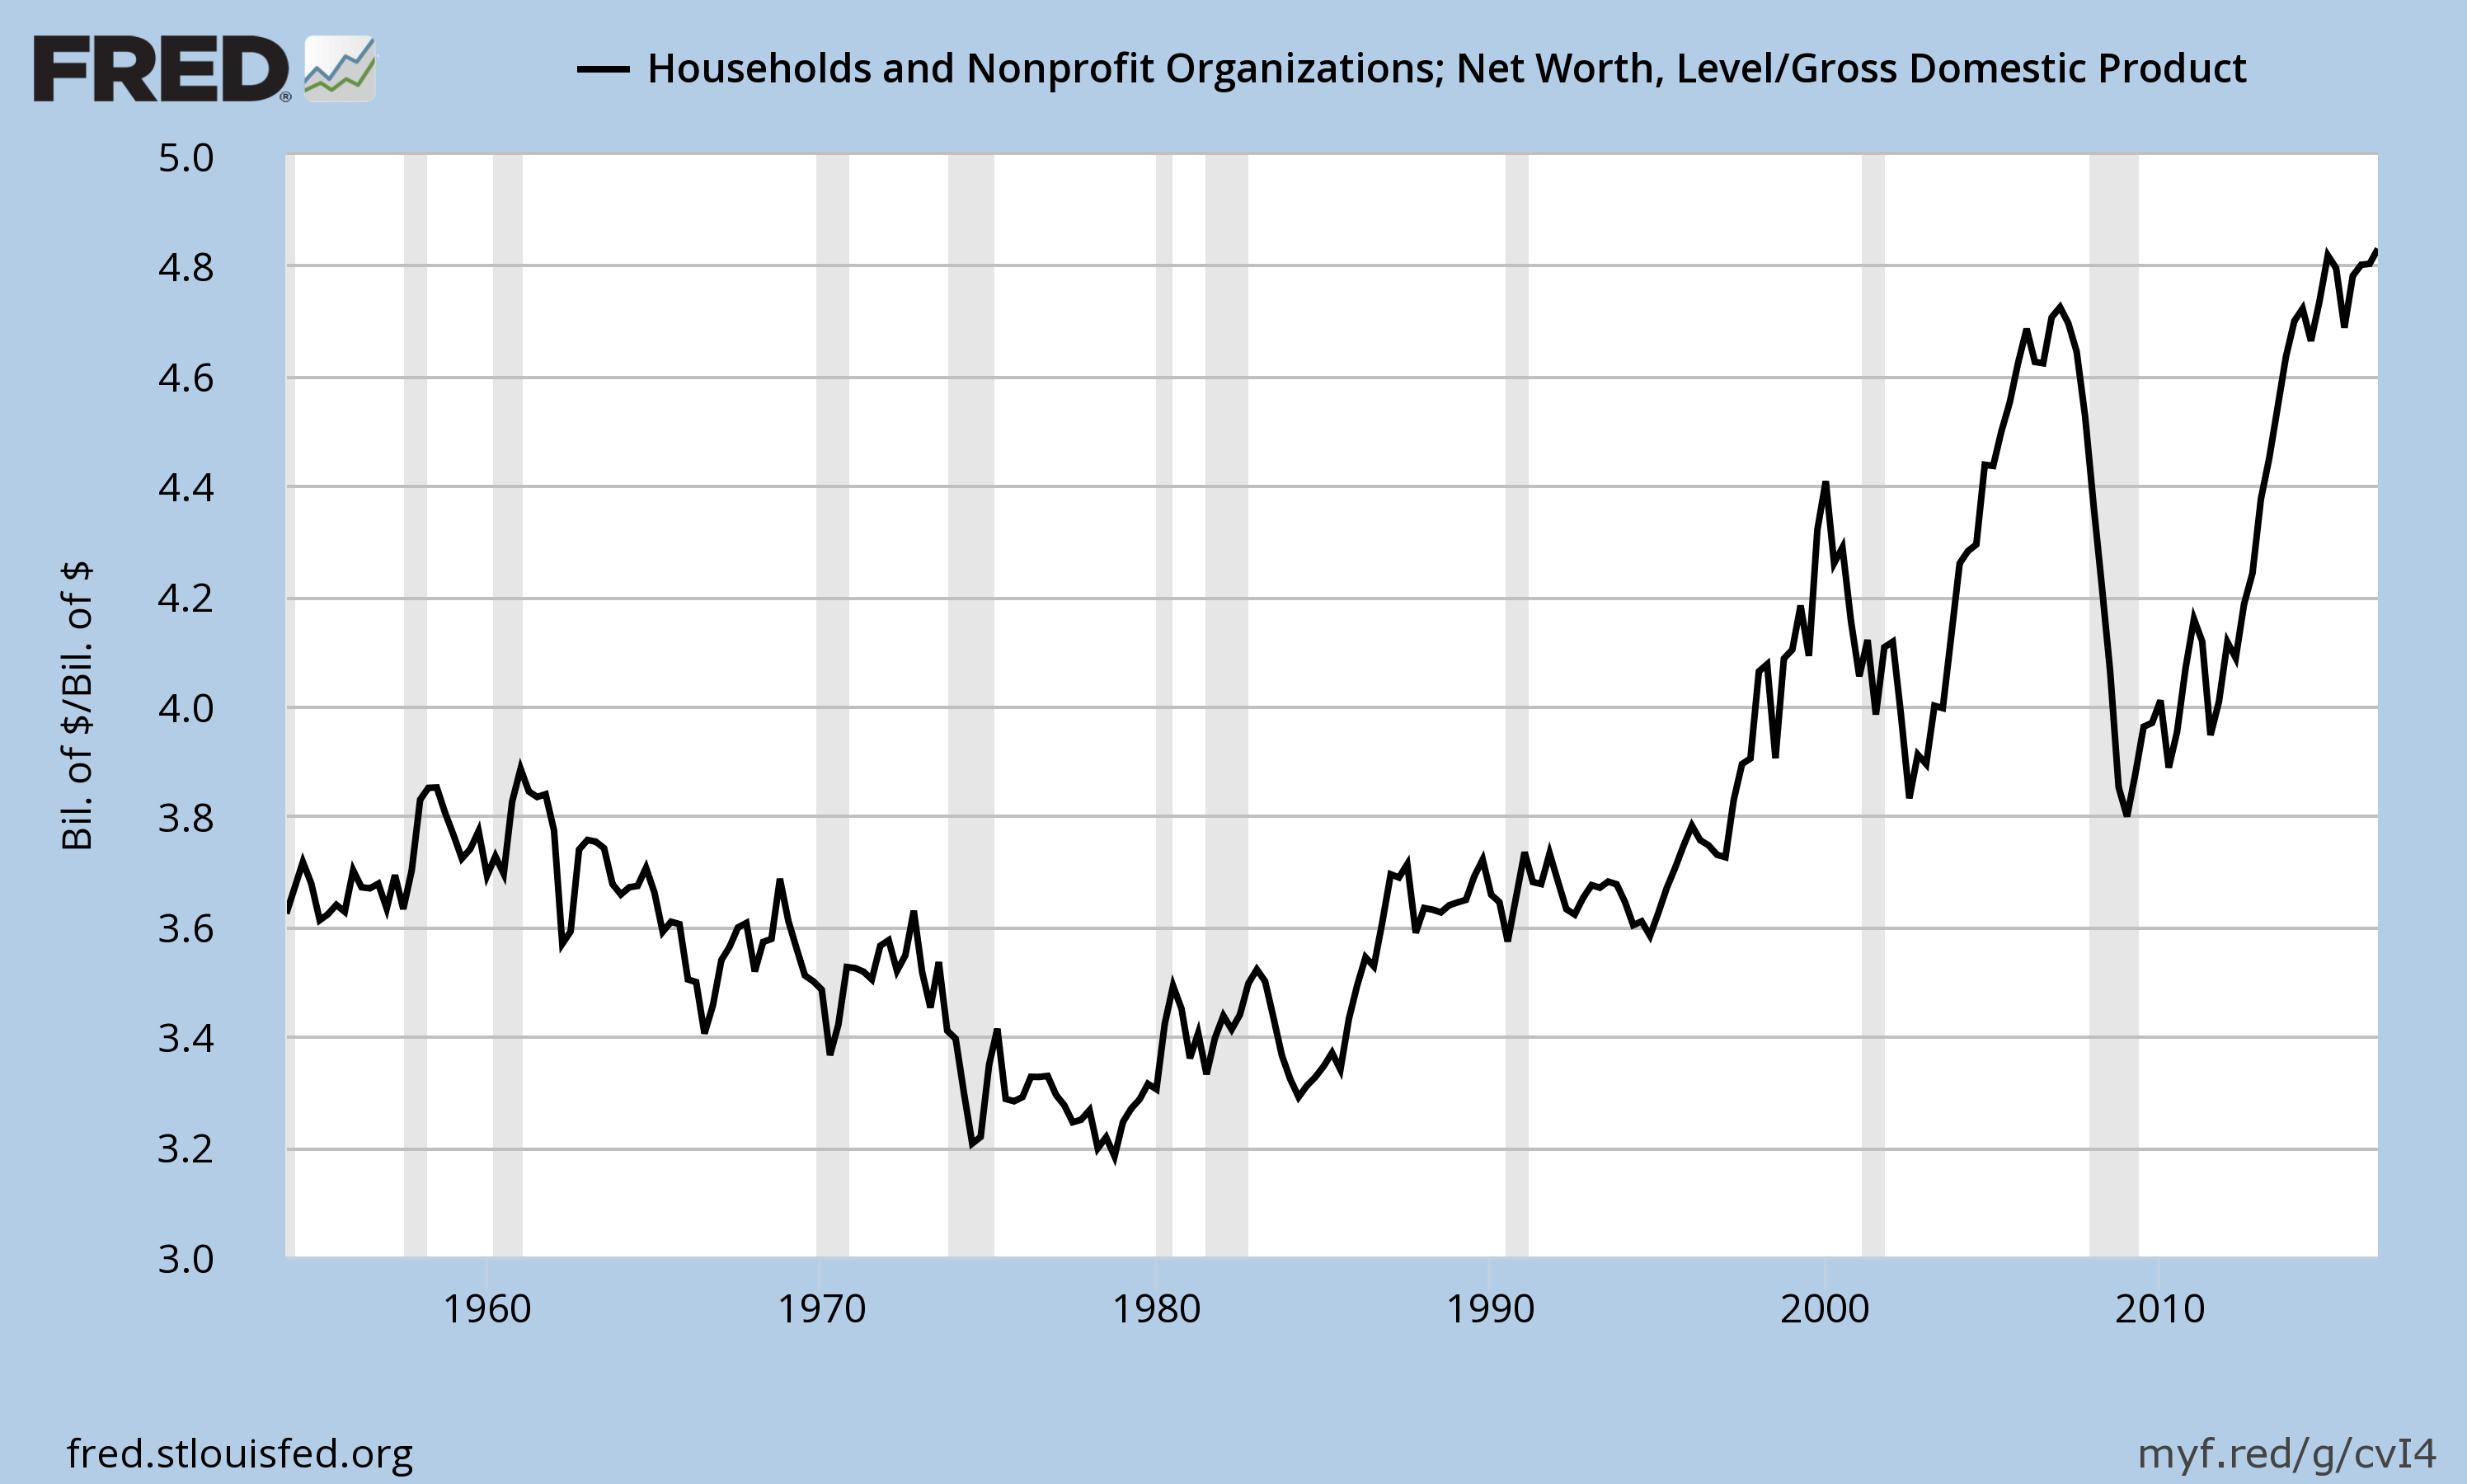 Household Worth and GDP